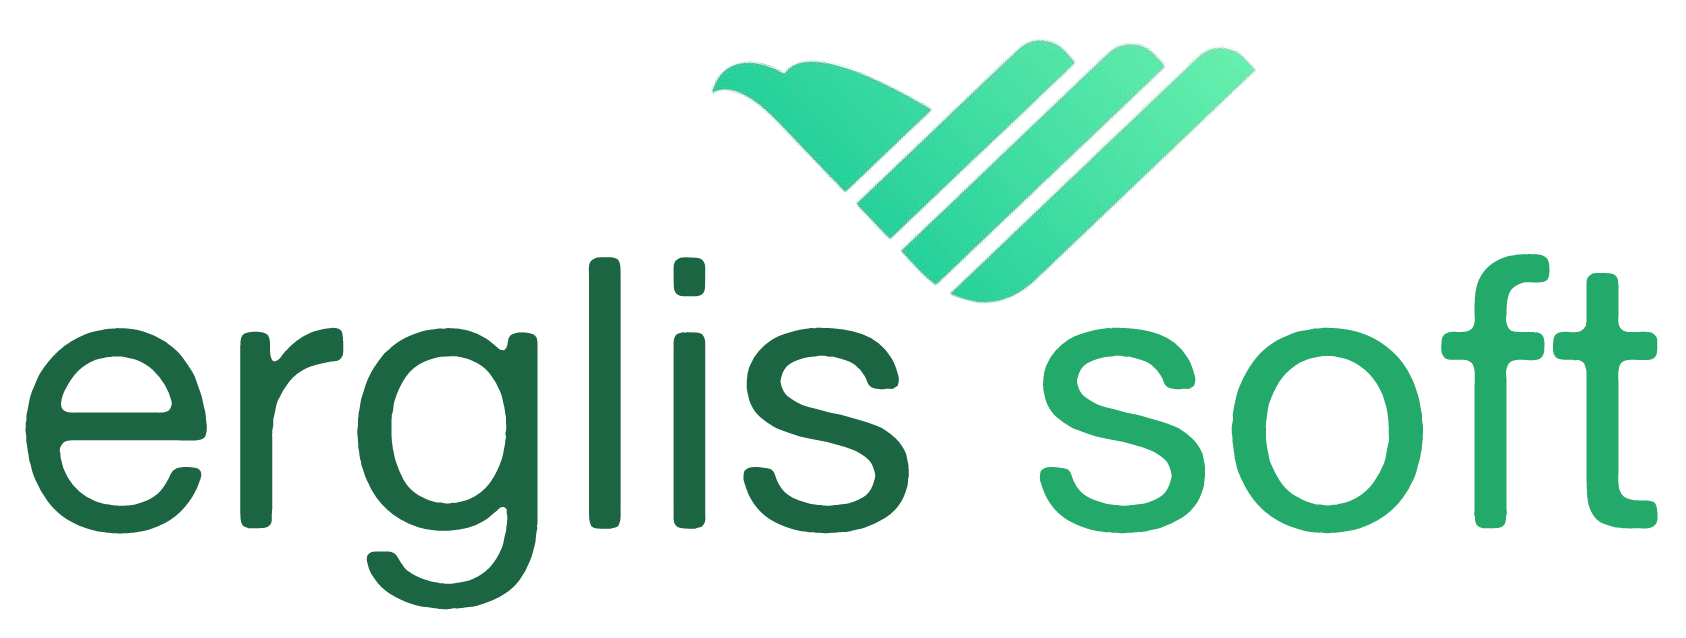 Erglis Softcorp Private Limited